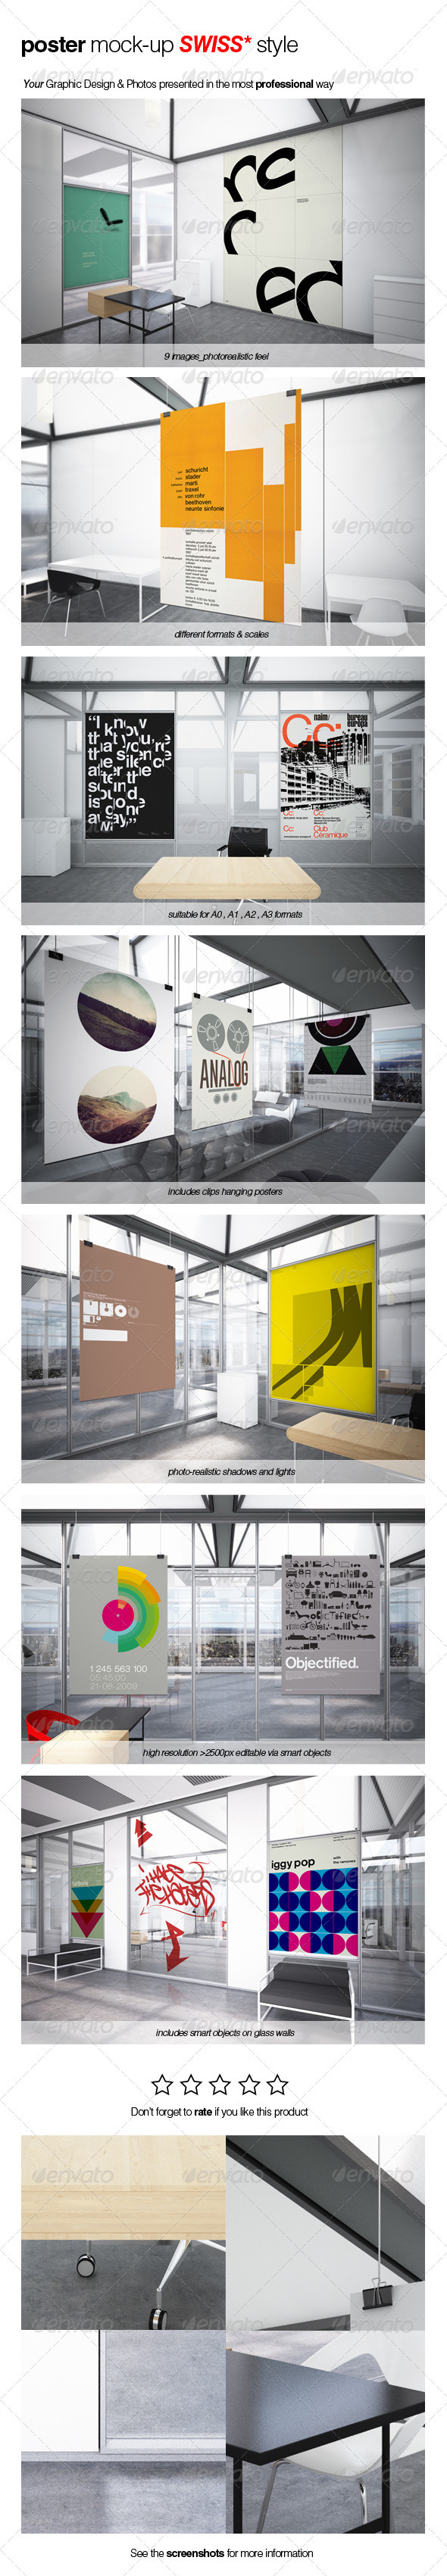 GraphicRiver Poster Mock-up SWISS Style 2460975